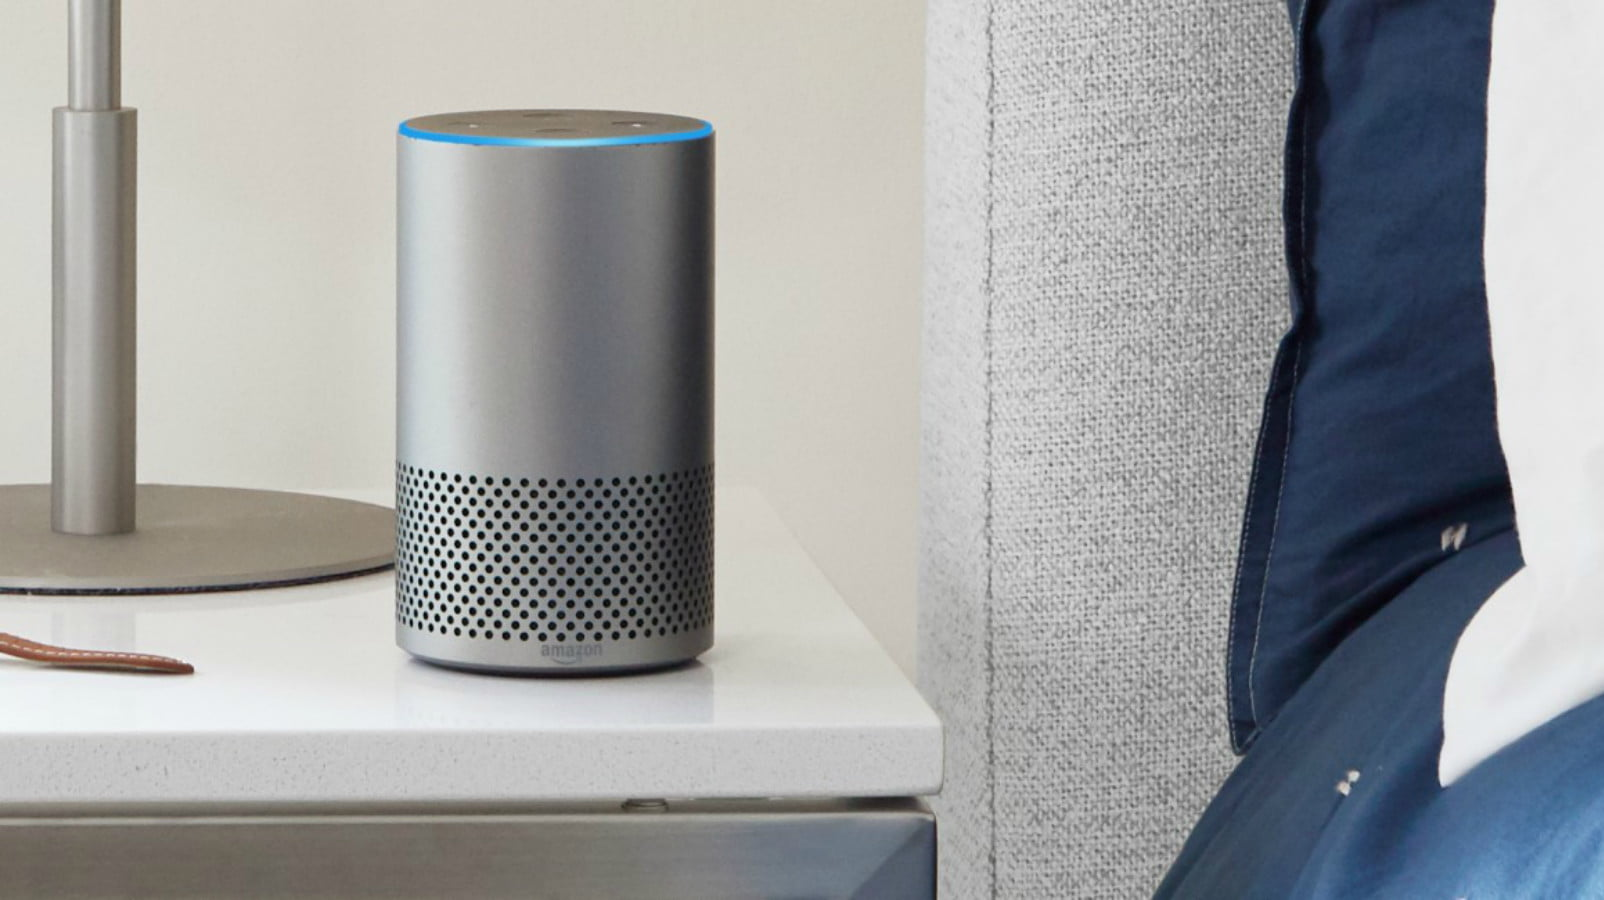 1e47efda0bf Alexa Can Now Deliver the News Like a Professional Newscaster ...